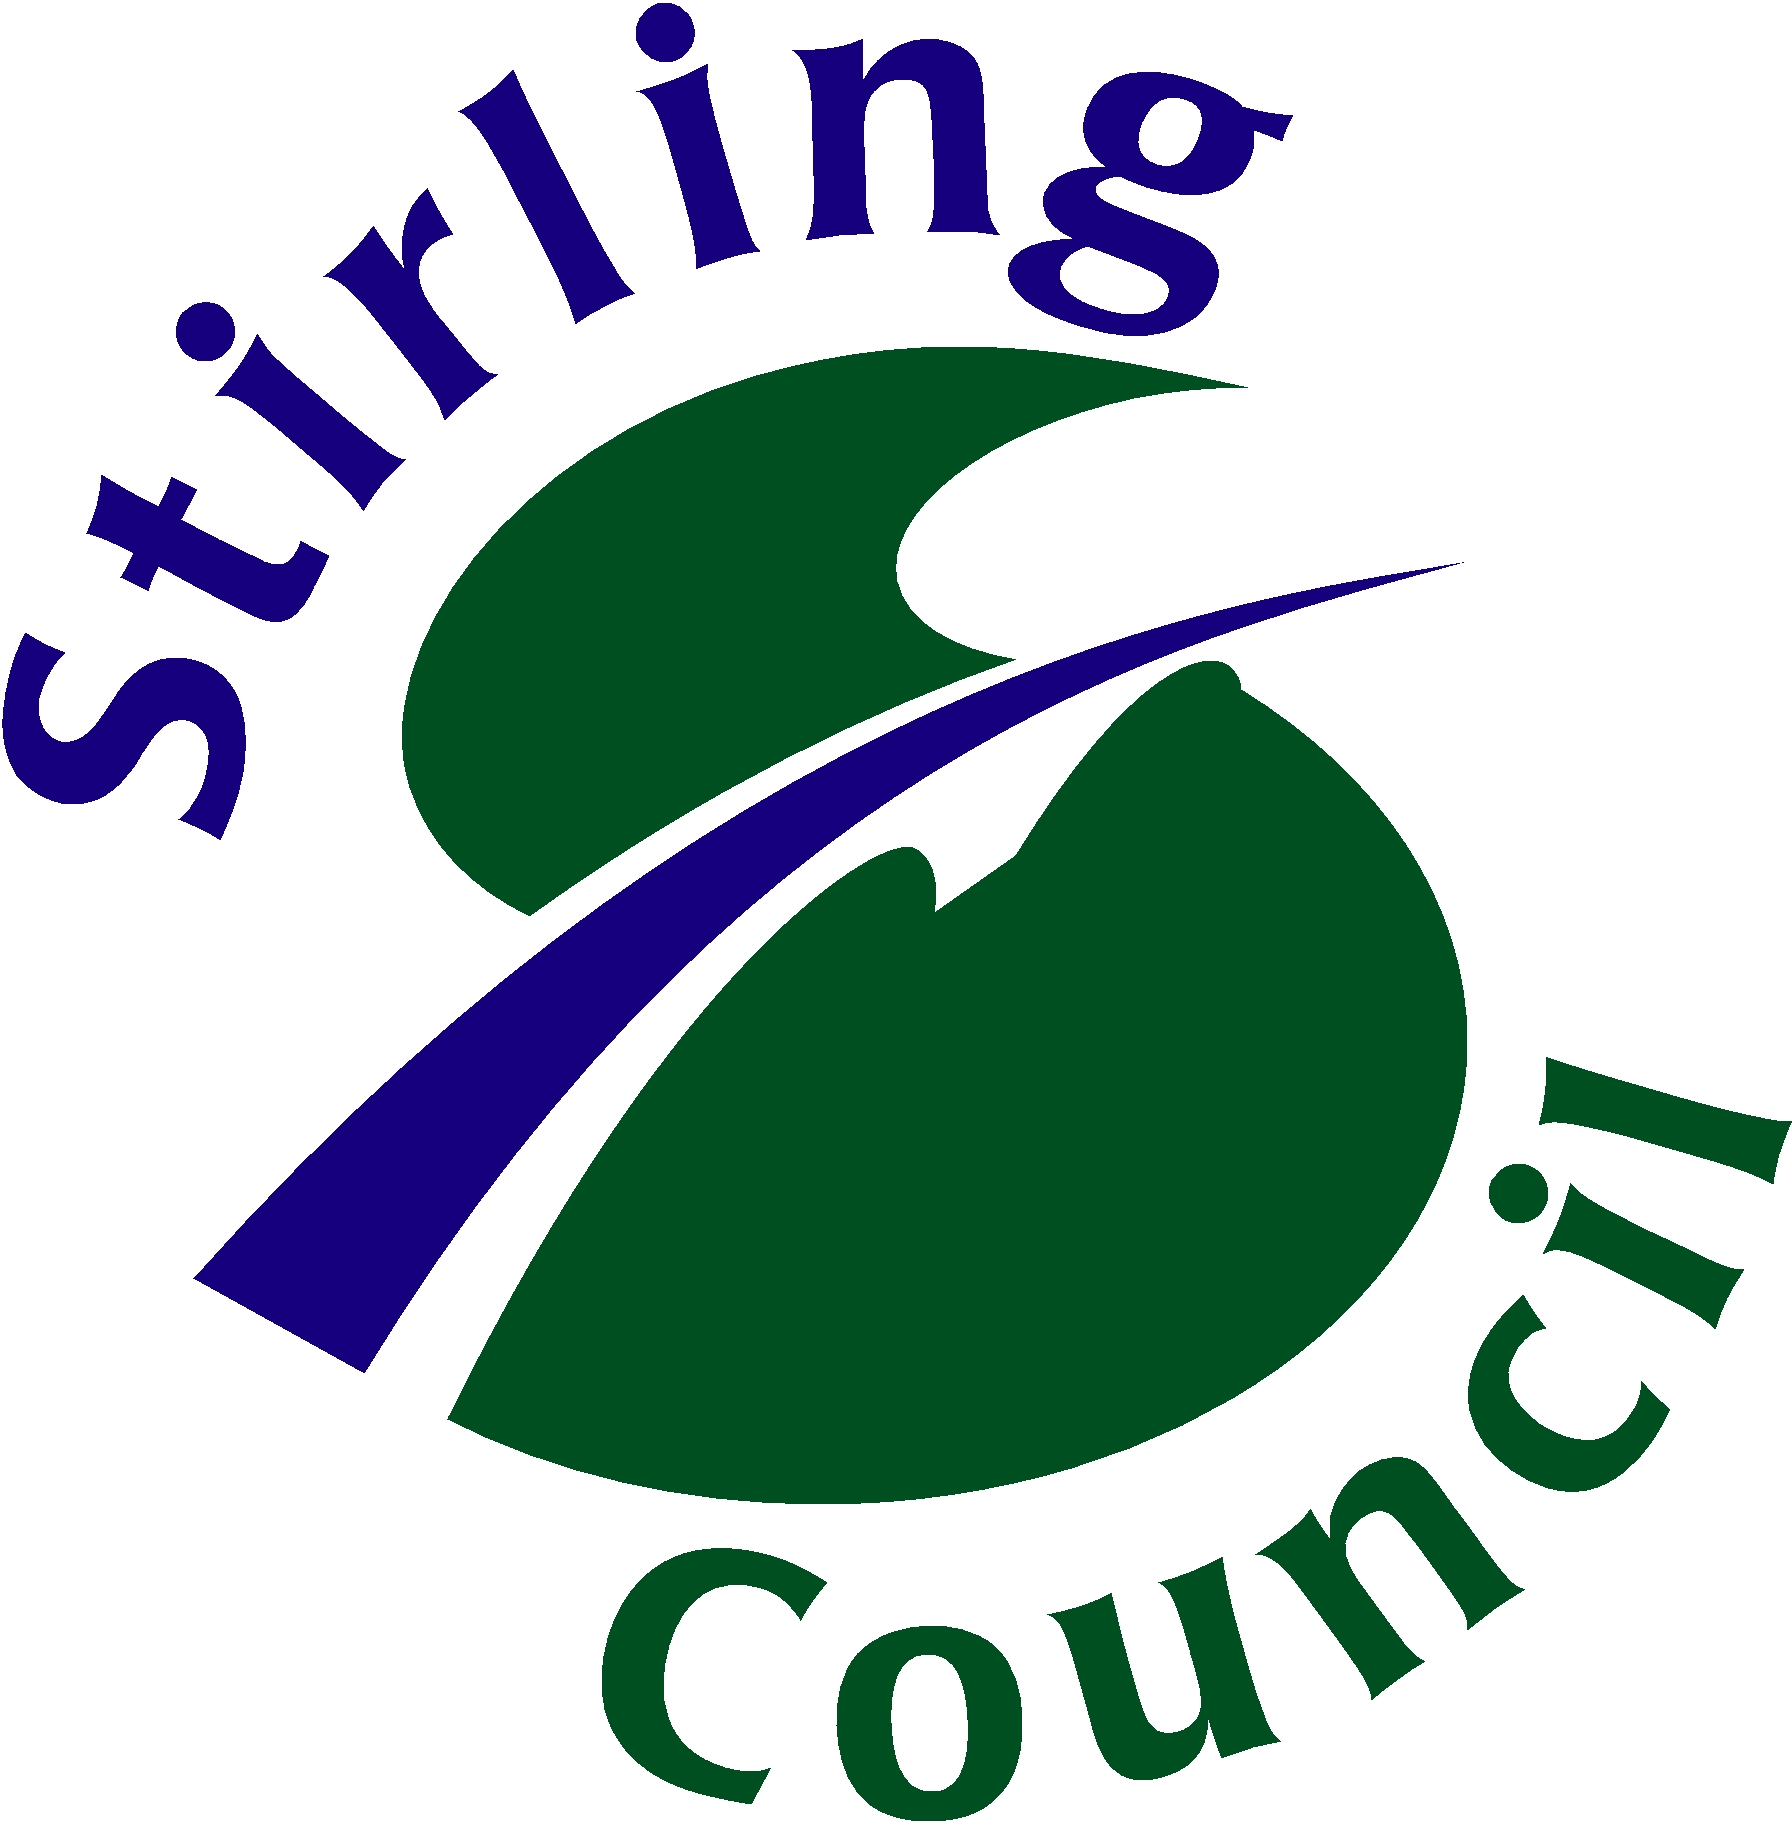 Stirling Council's logo in green, white and purple